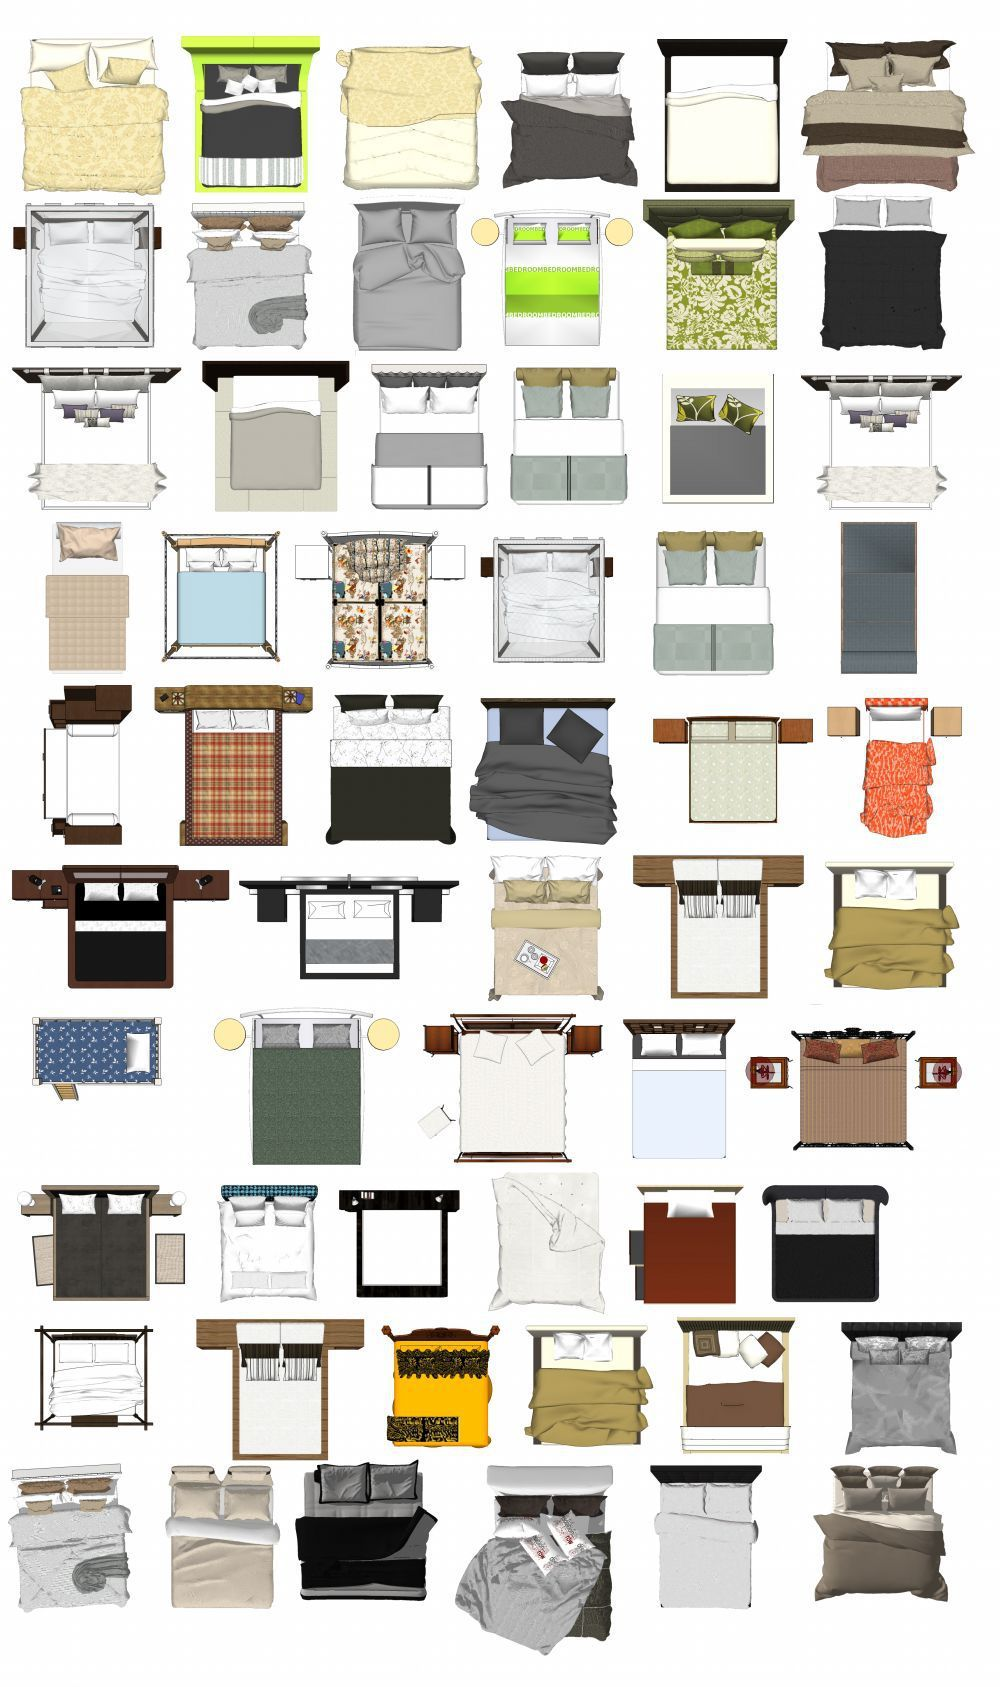 Download Free Furniture For Revit - Free photoshop psd bed blocks 1 free cad blocks drawings download center